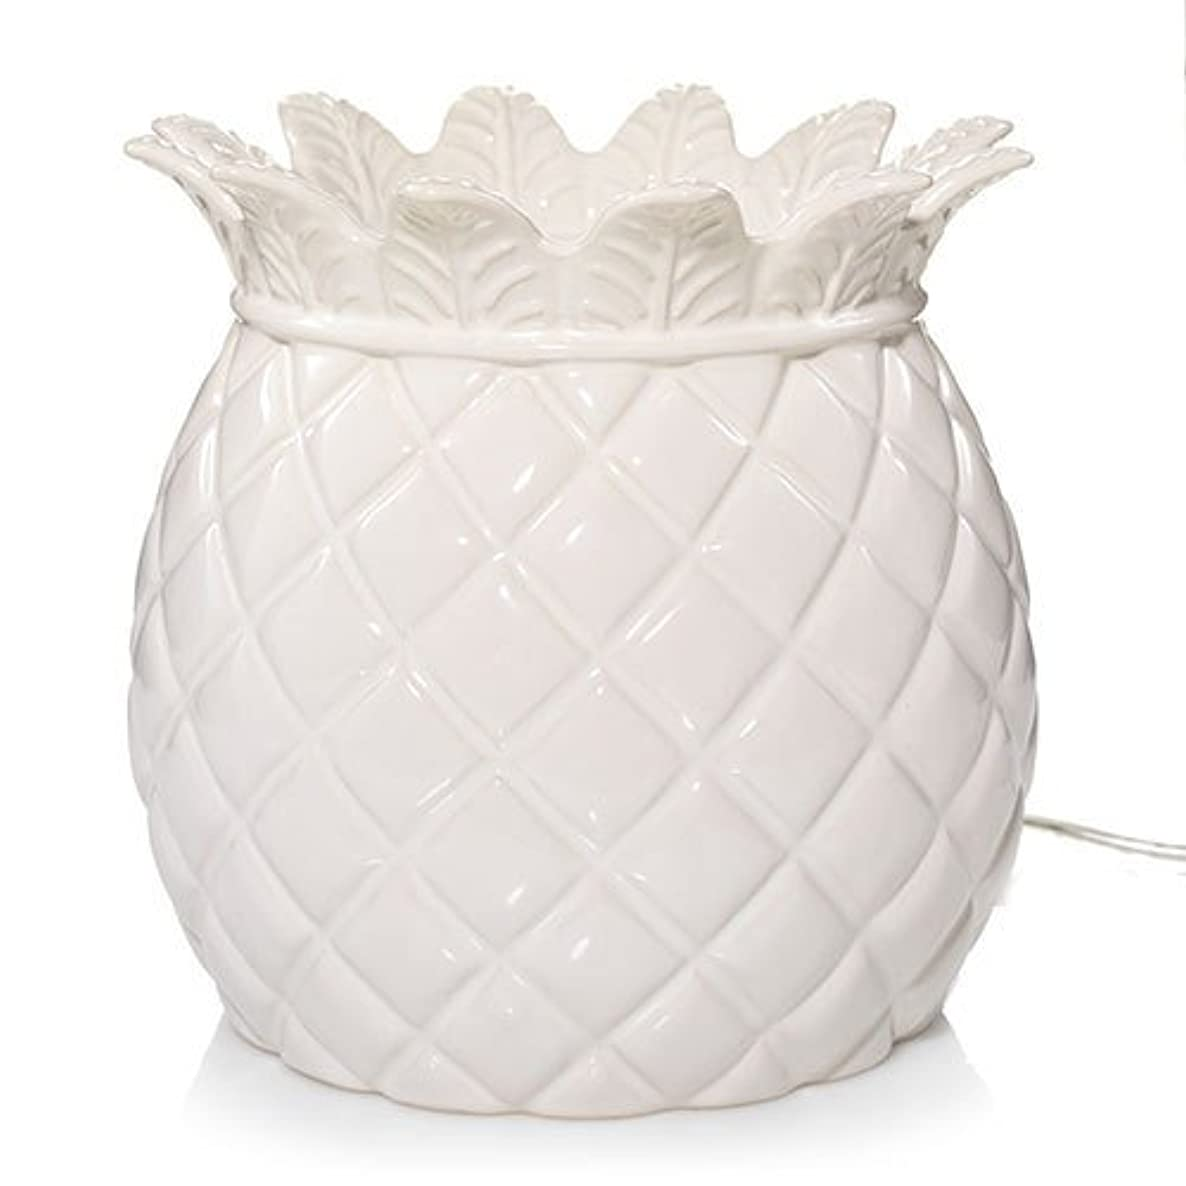 Yankee Candle Pineapple with Timer Scenterpiece Easy MeltCup Warmer